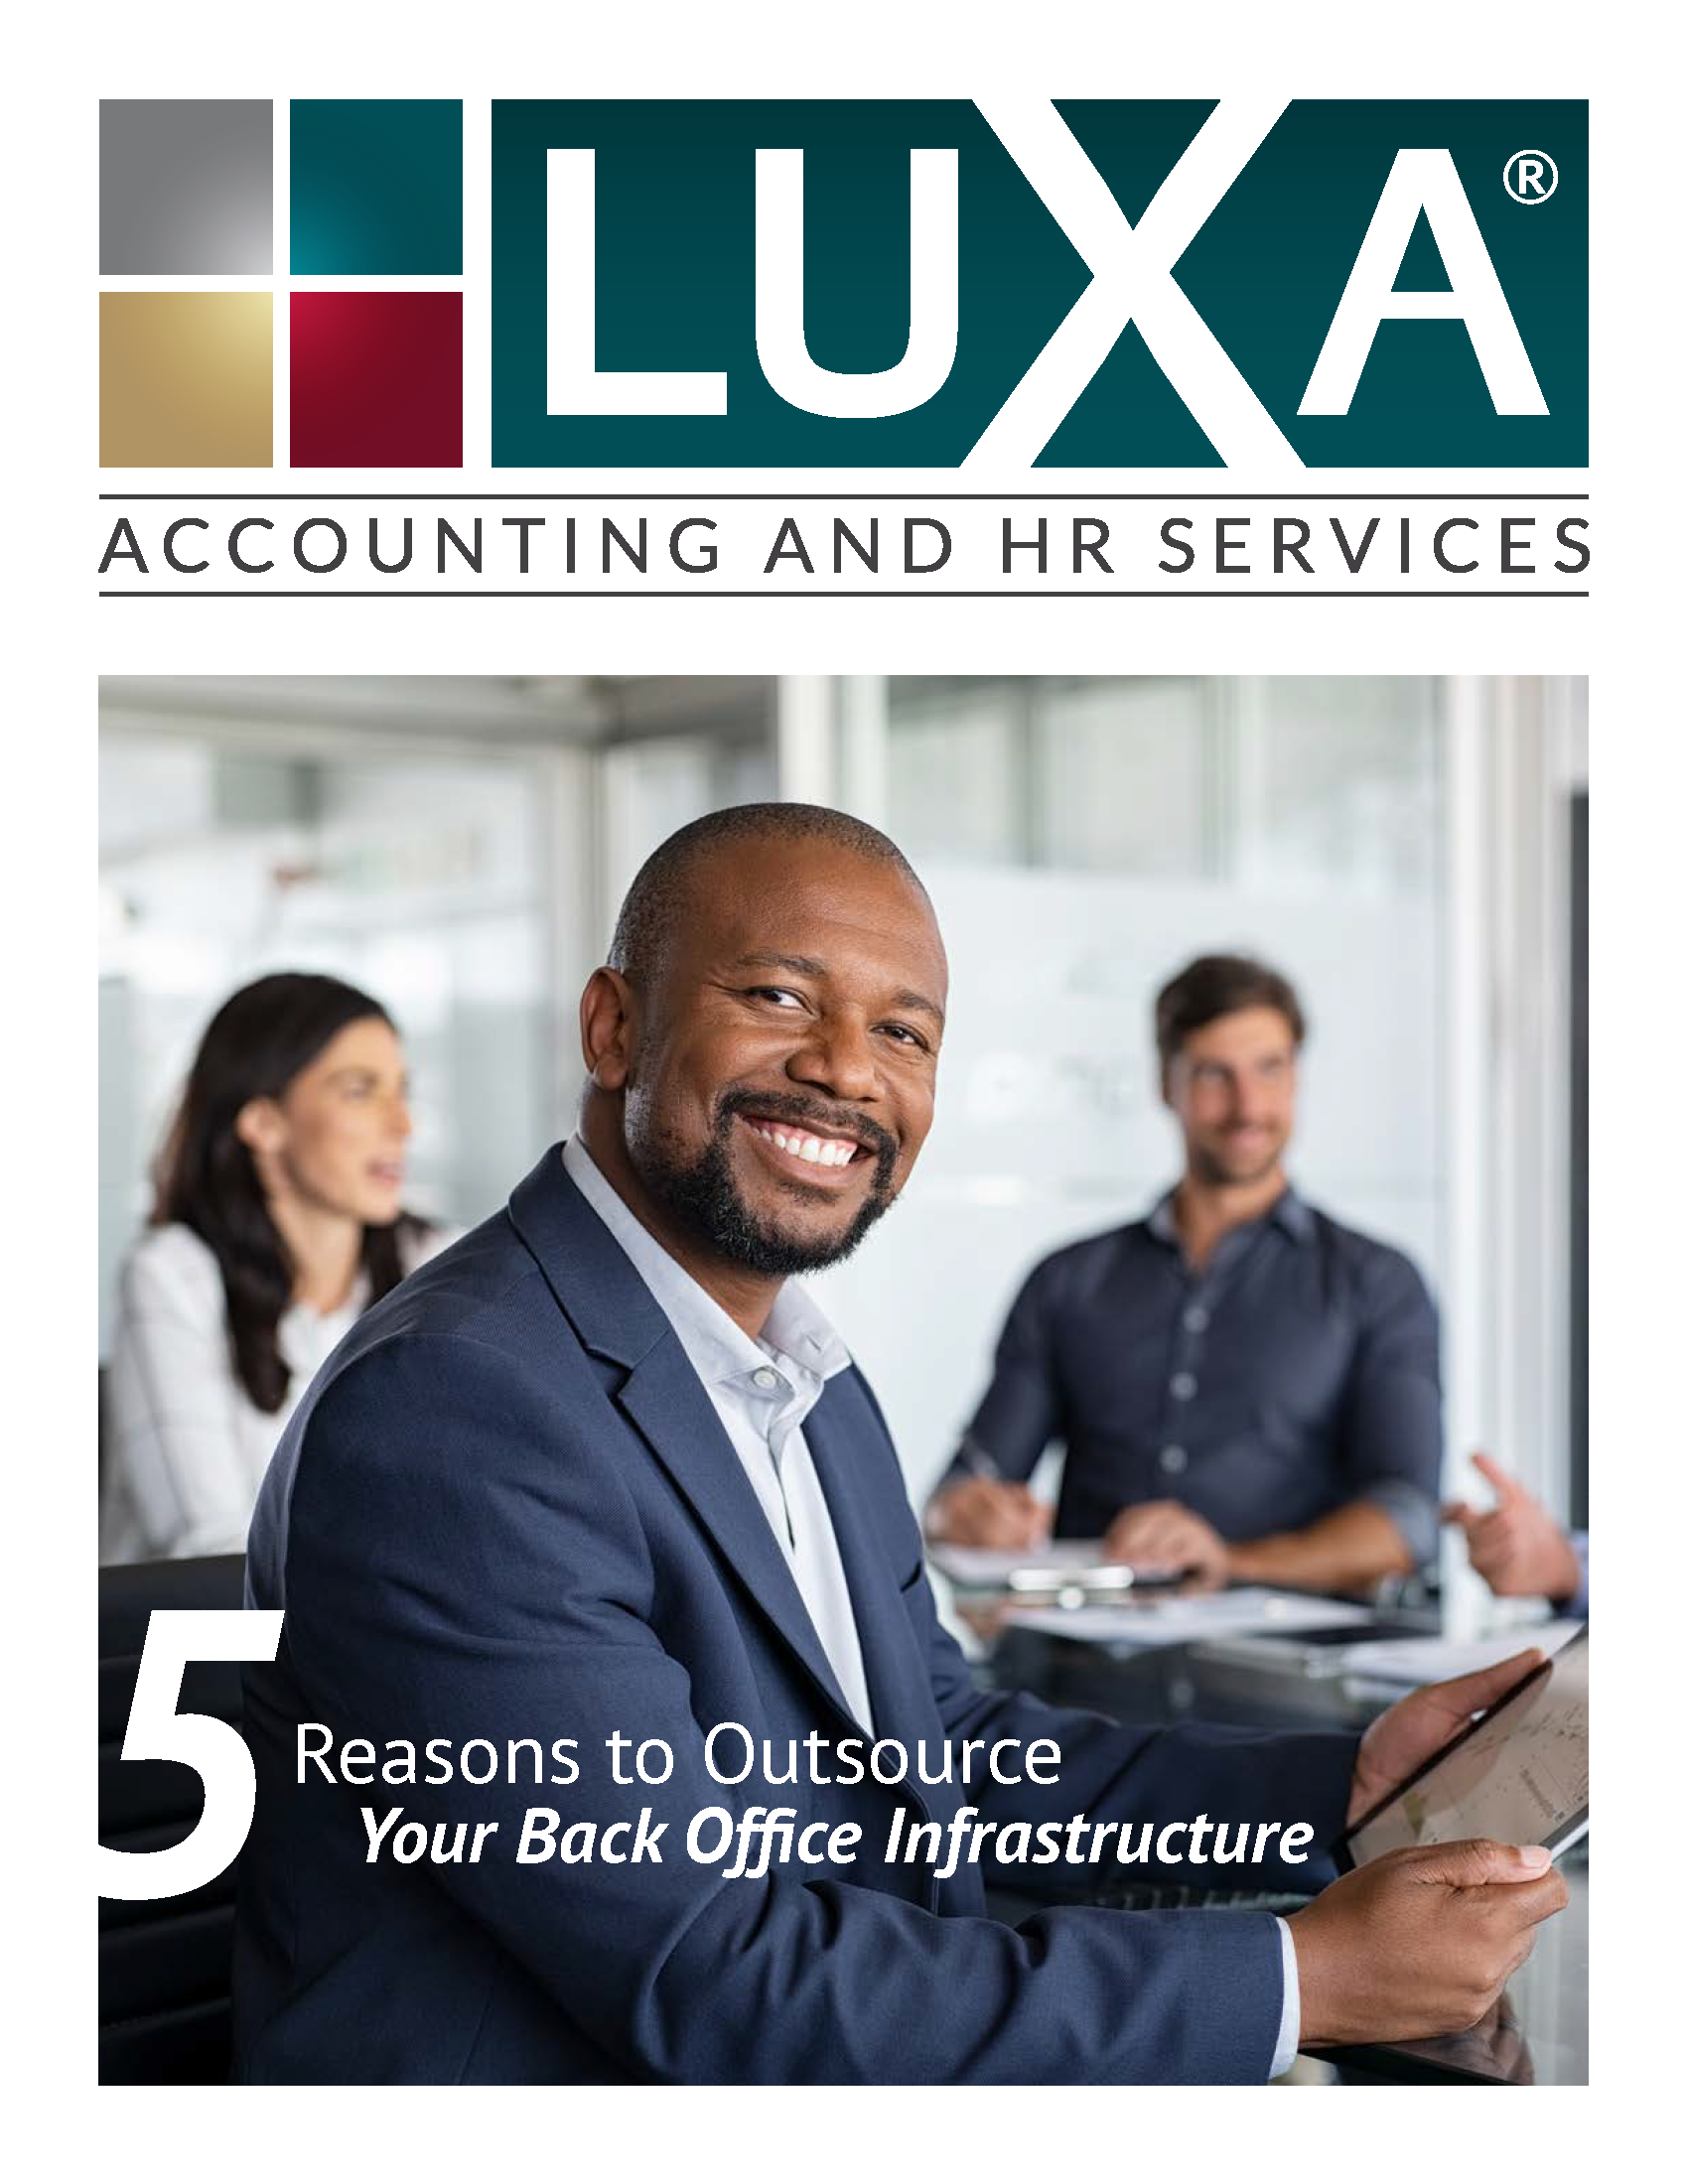 LUXA - 5 Reasons to Outsource Your Back Office Infrastructure